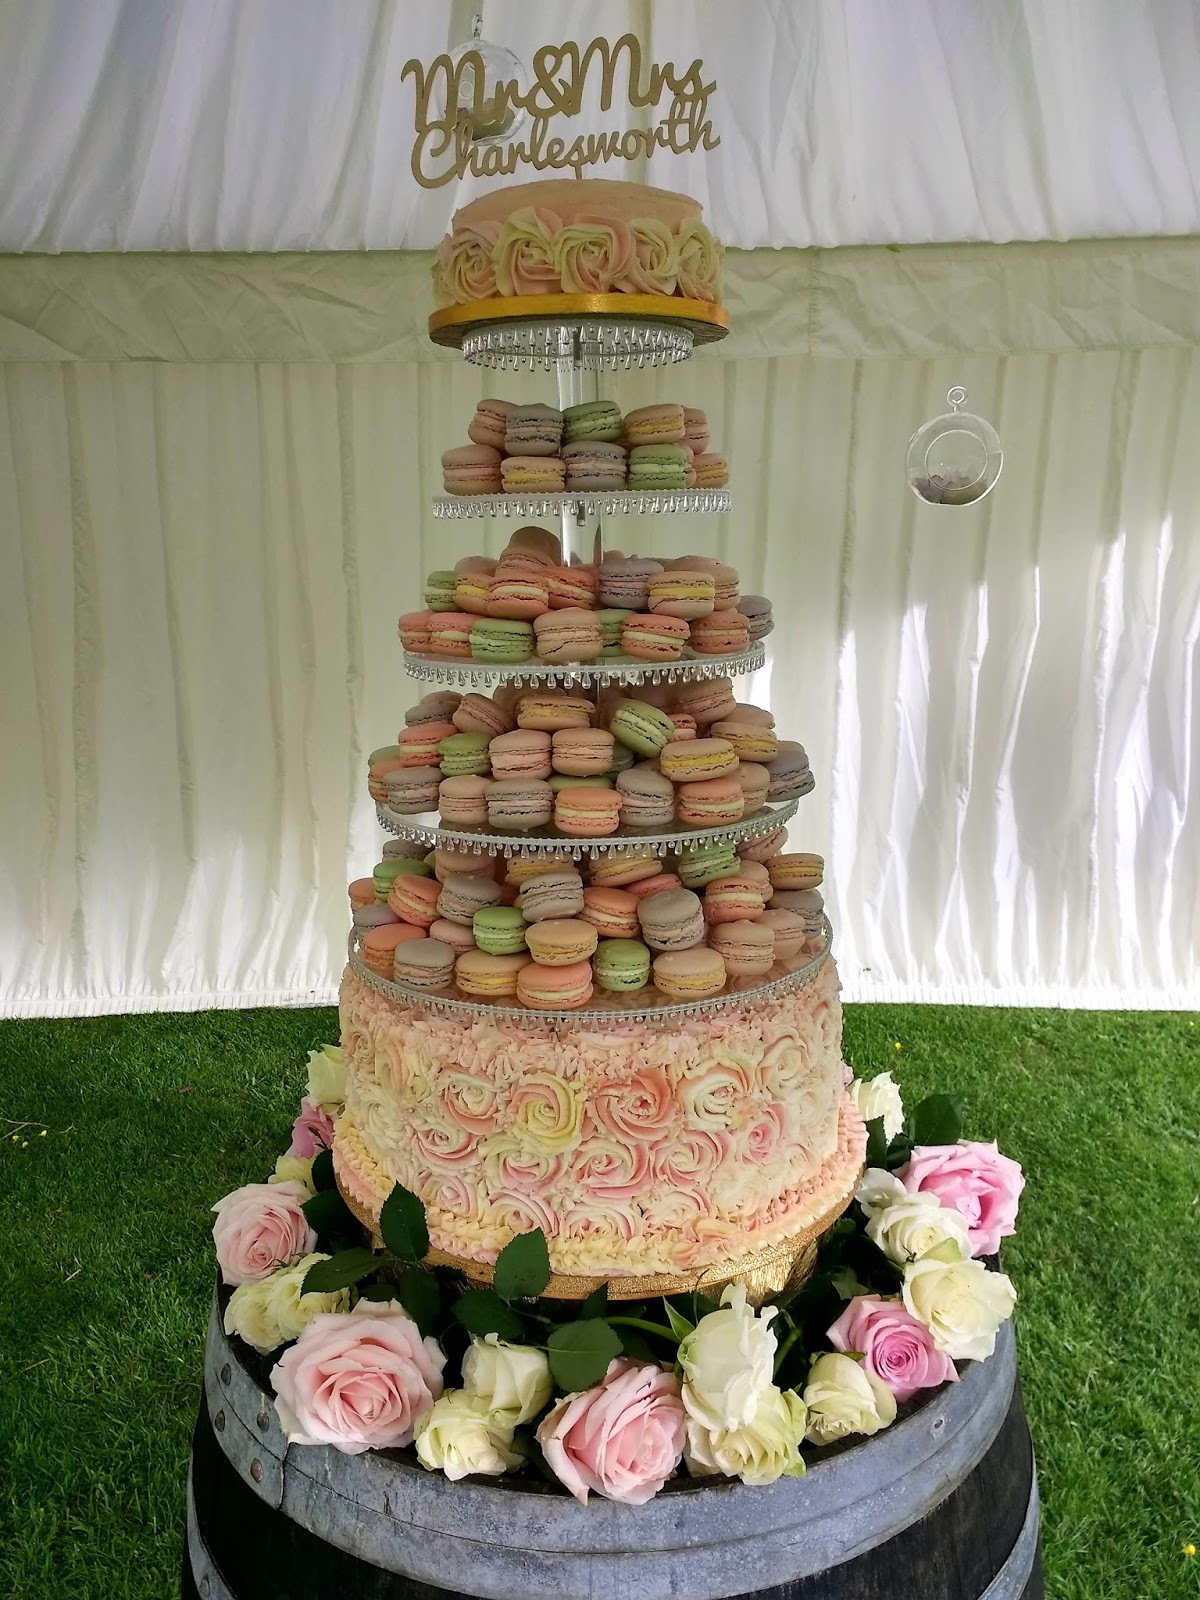 macarons wedding cake s cottage kitchen roses and macarons wedding cake 16969